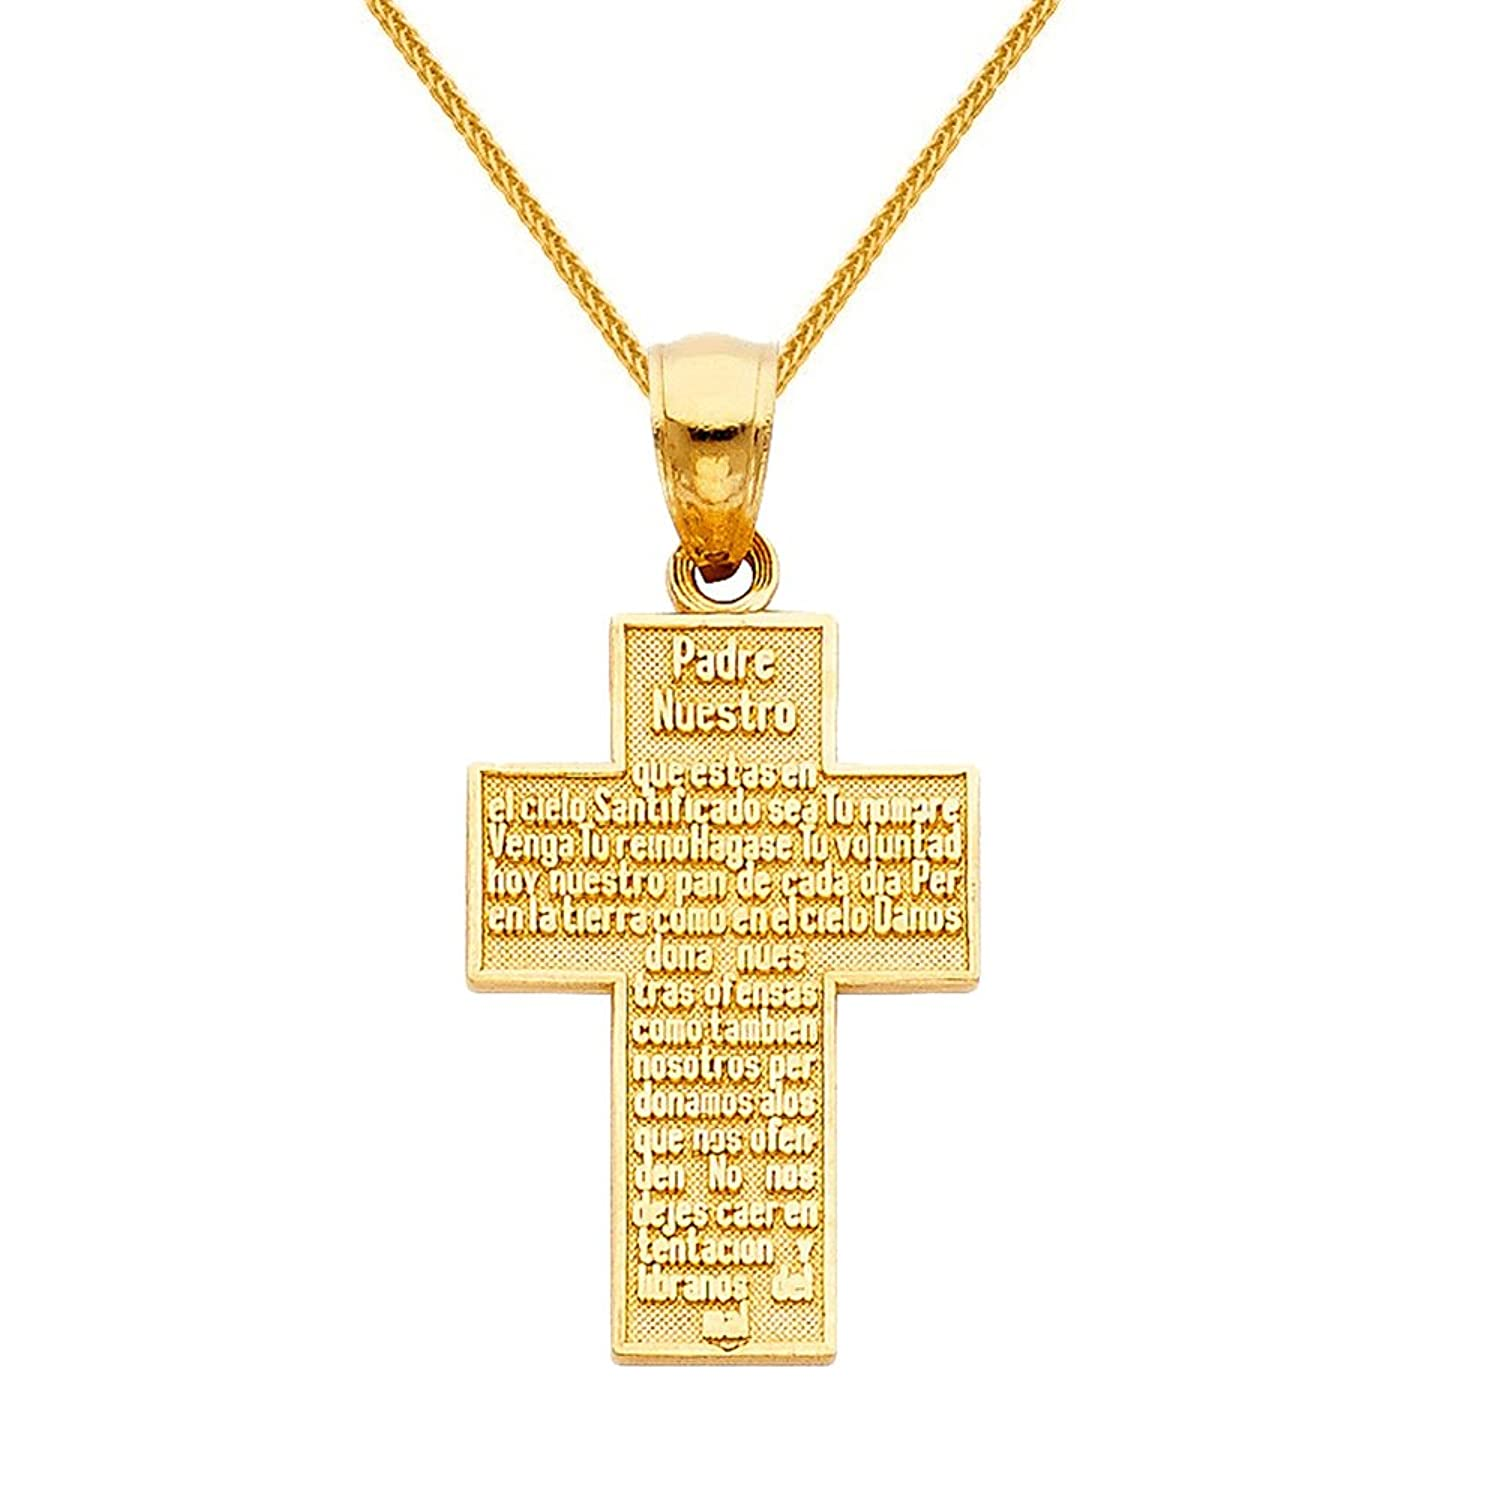 14k Yellow Gold 0.86-inch Padre Nuestro Cross Pendant with 0.8-mm Square Wheat Chain